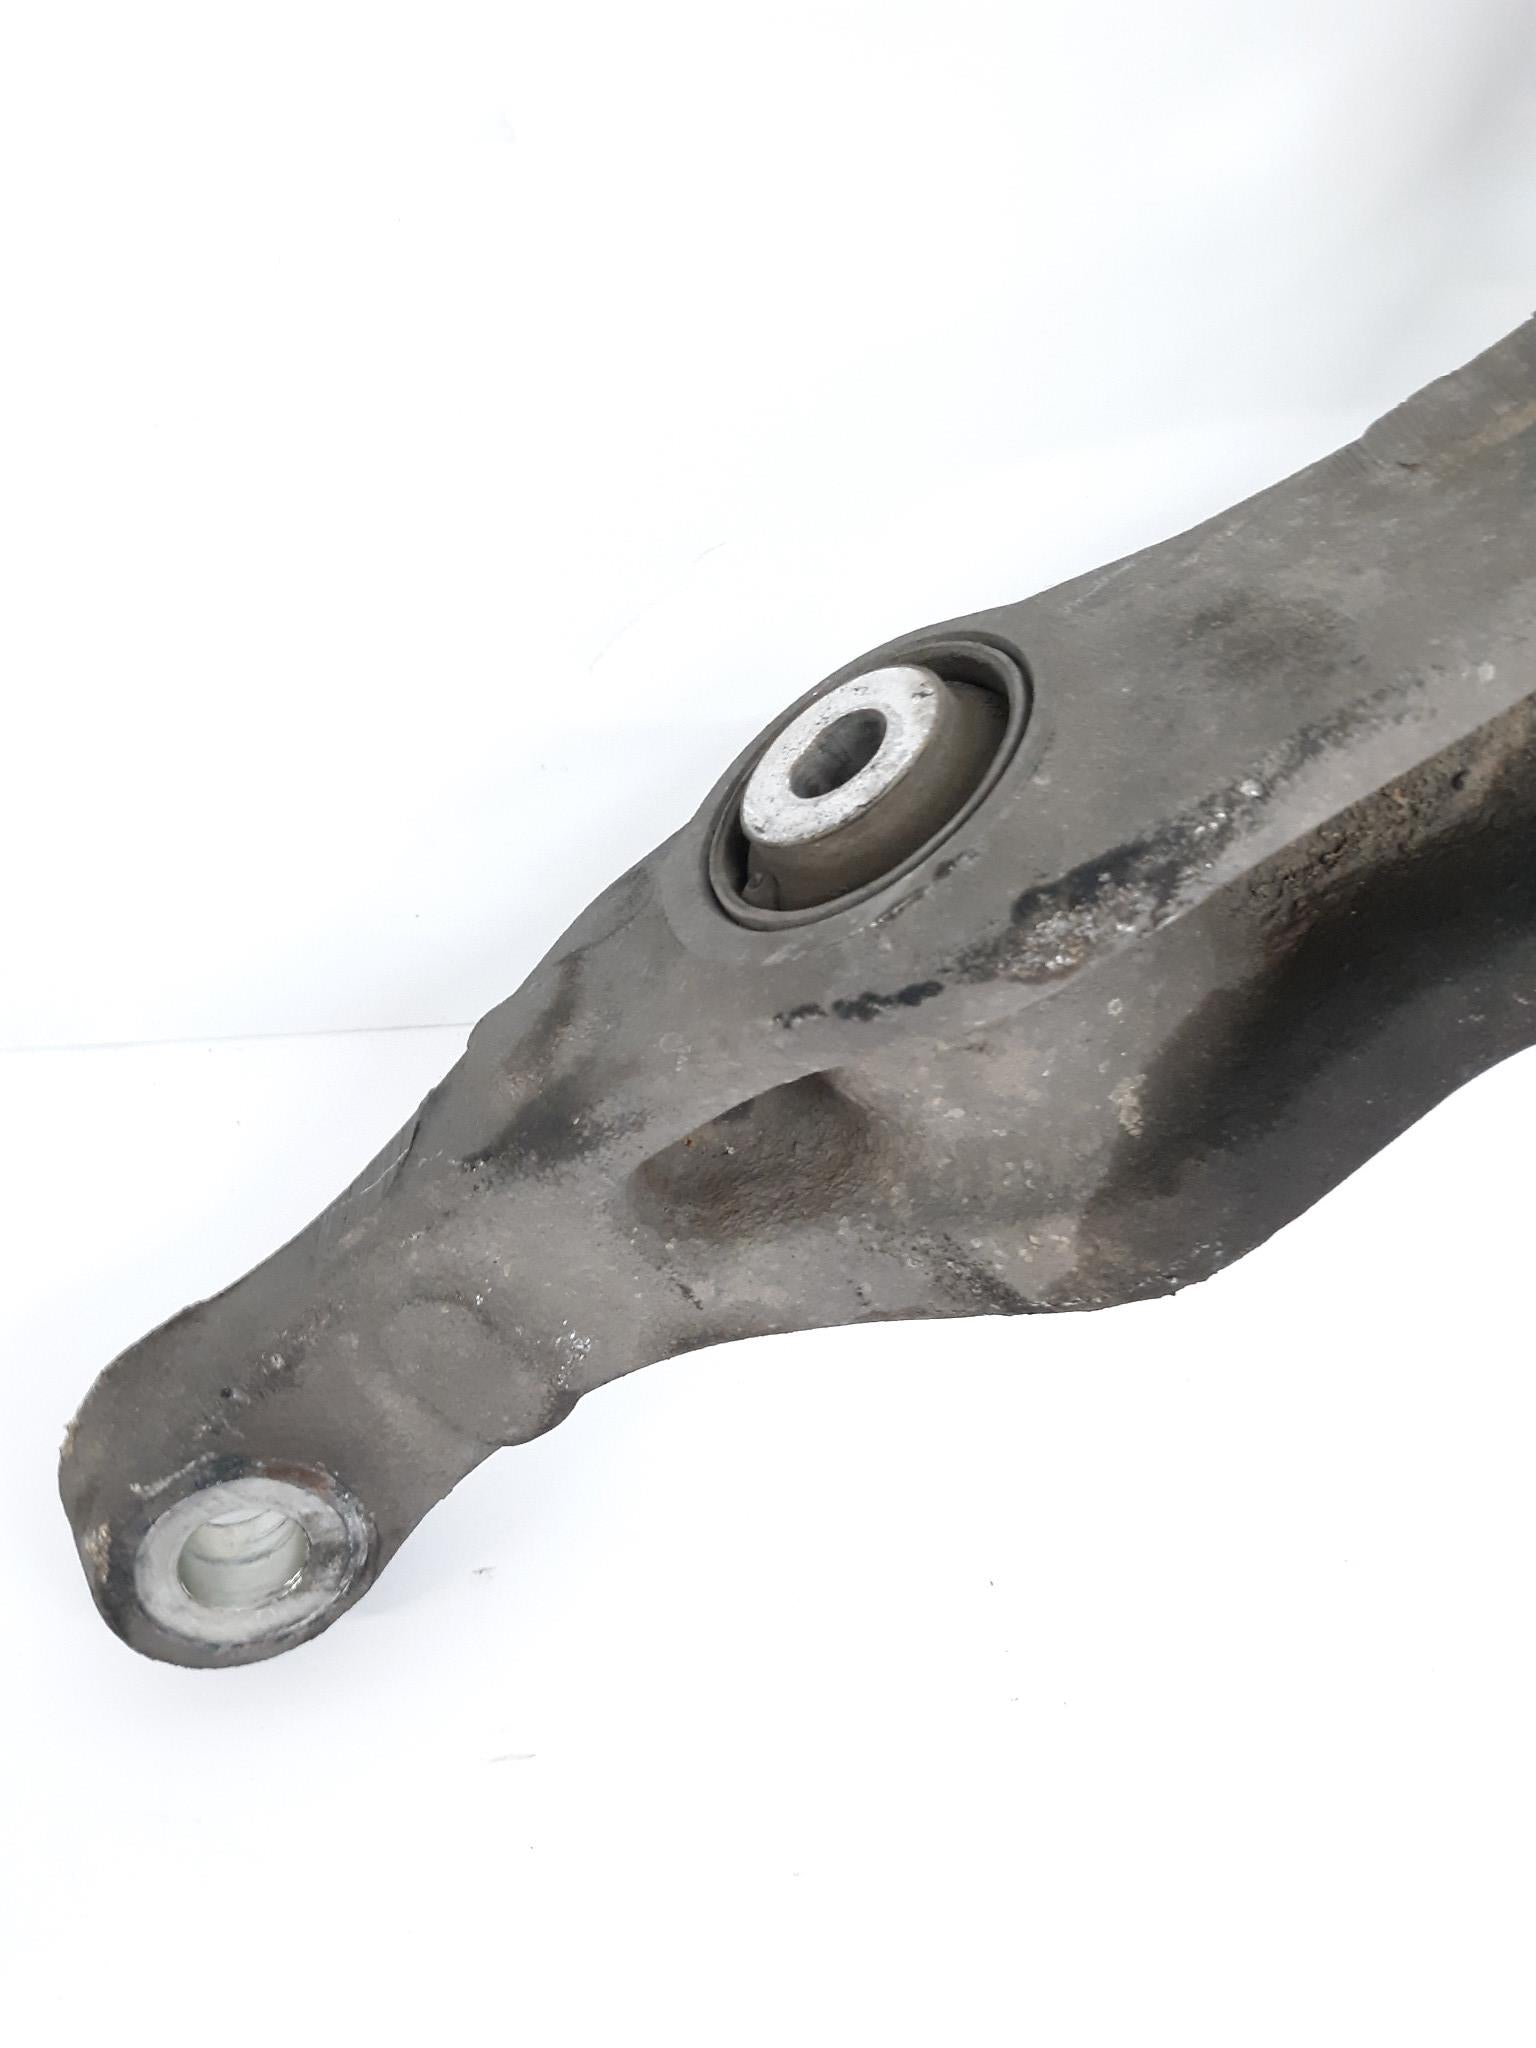 07 - 12 MERCEDES ML320 FRONT LEFT DRIVER SIDE LOWER CONTROL ARM 000062366106 OEM - Click Receive Auto Parts